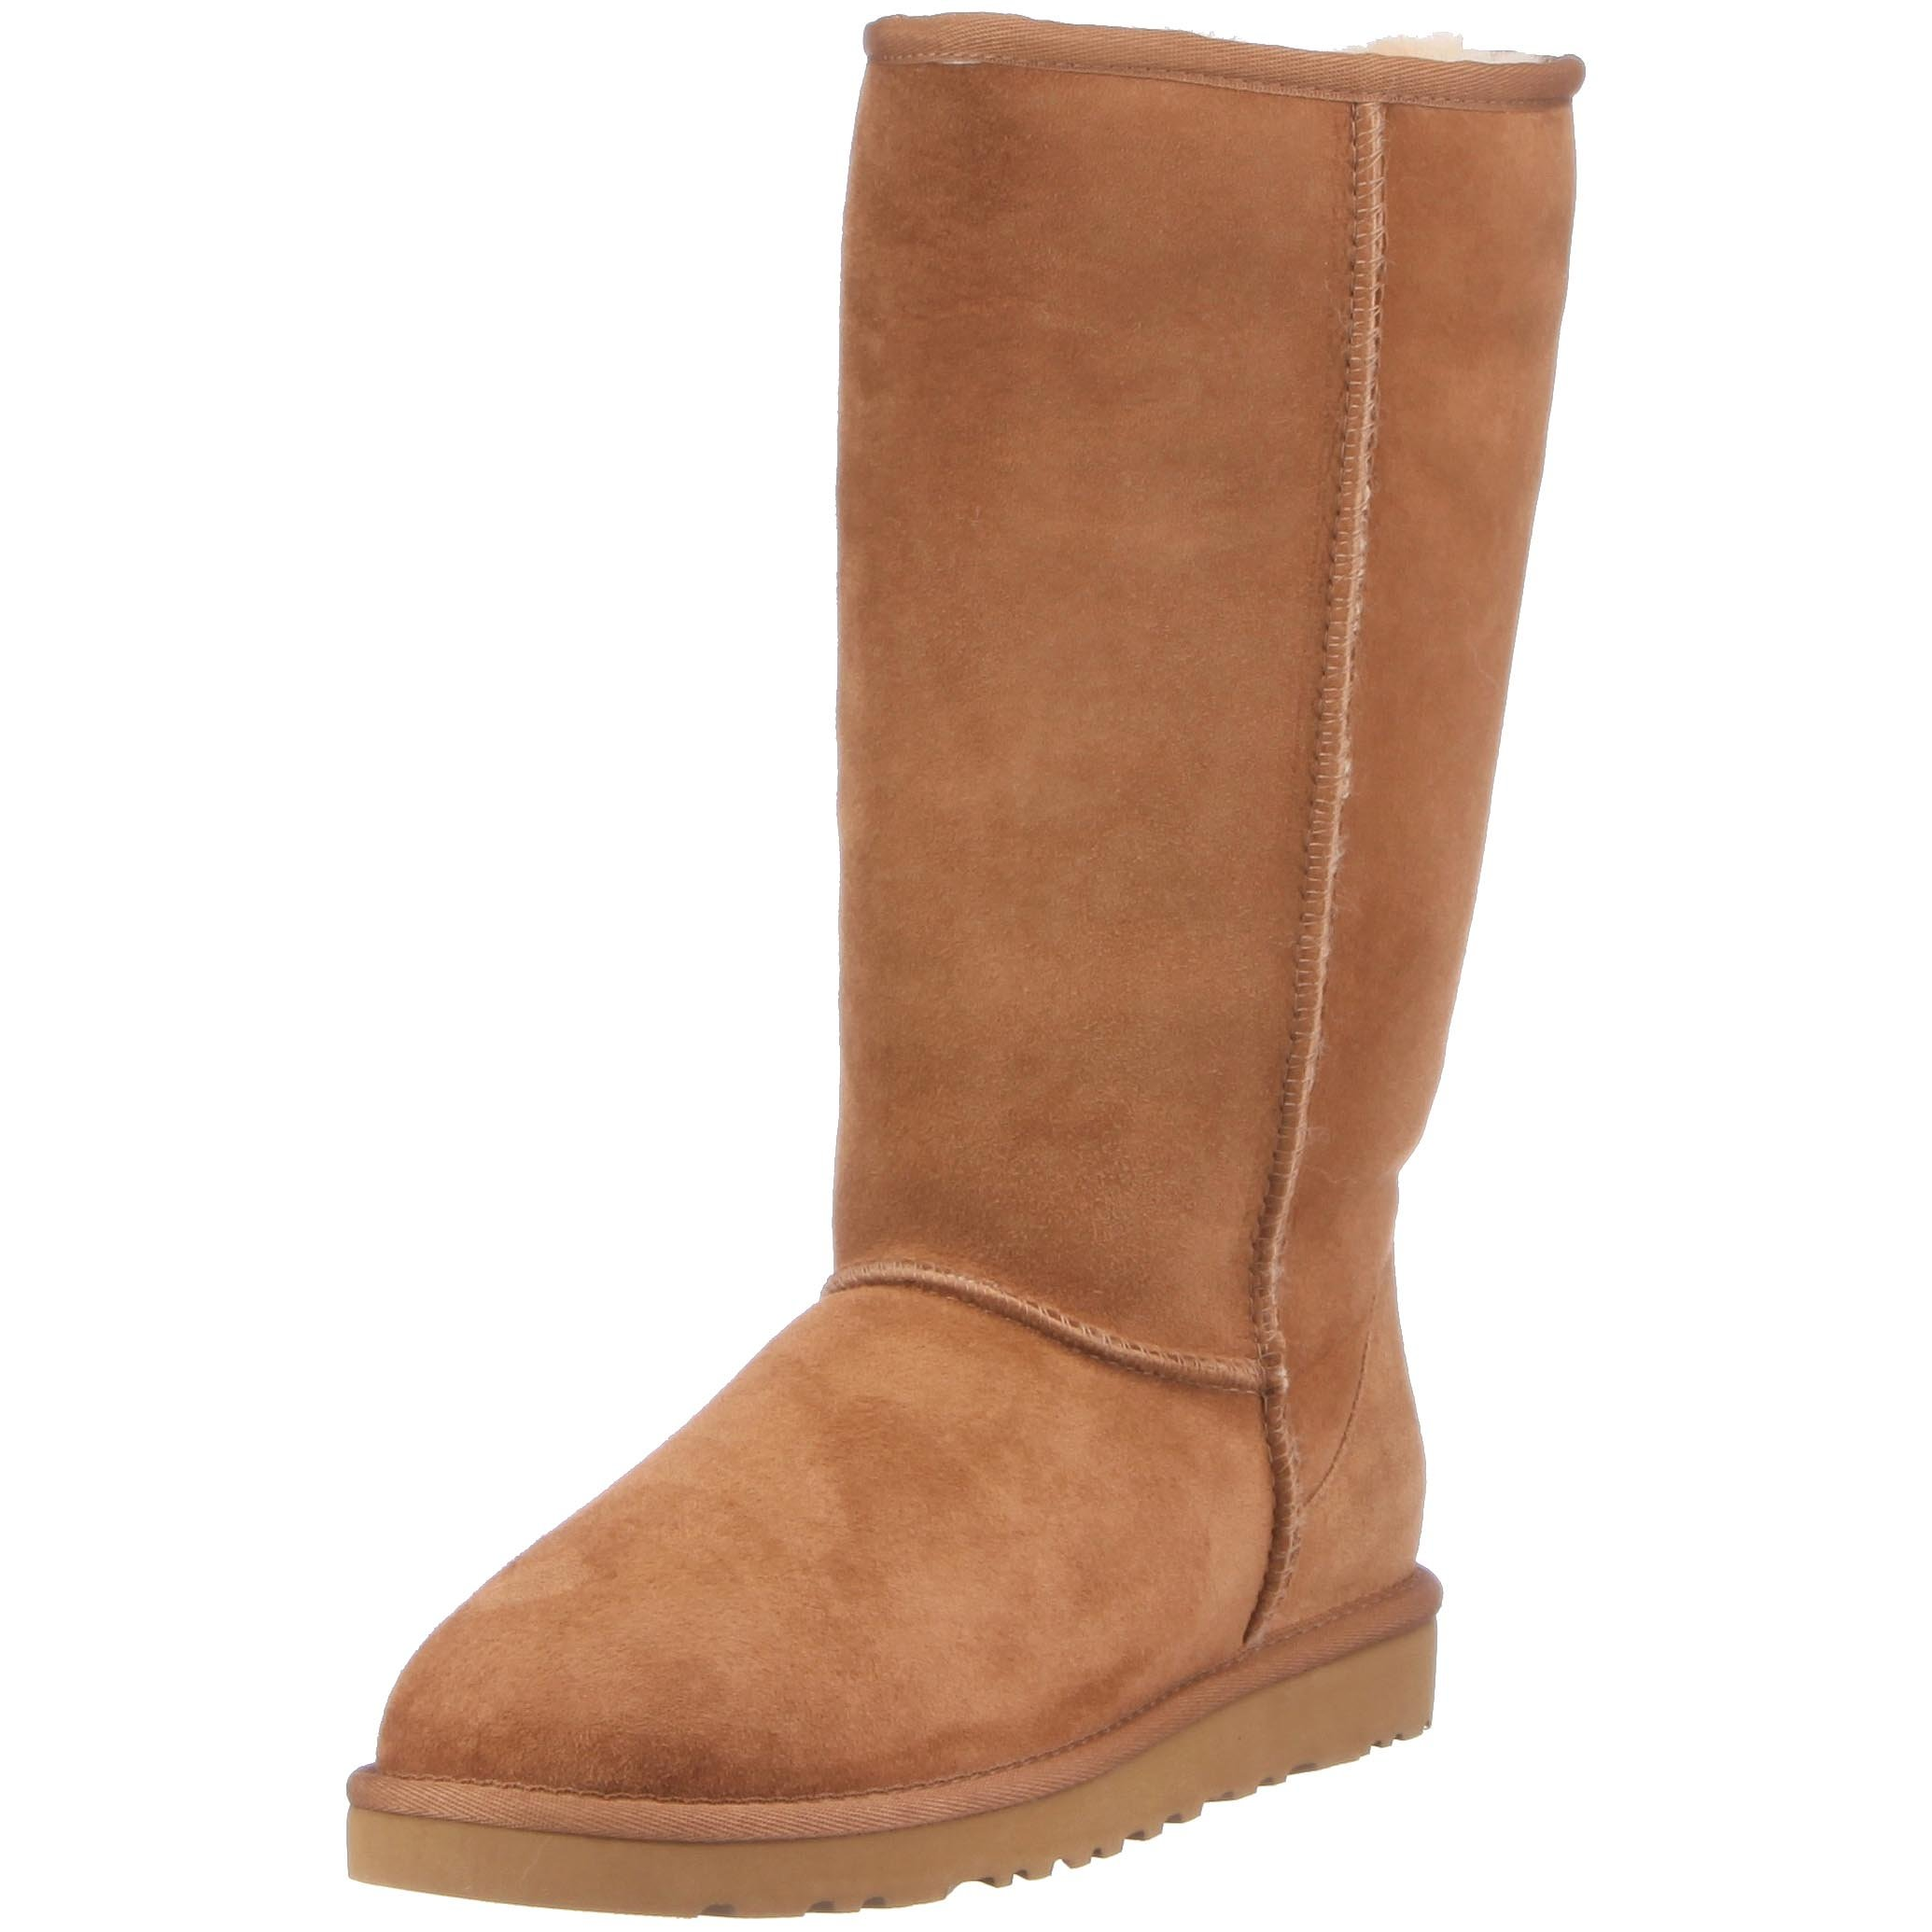 generic uggs for sale